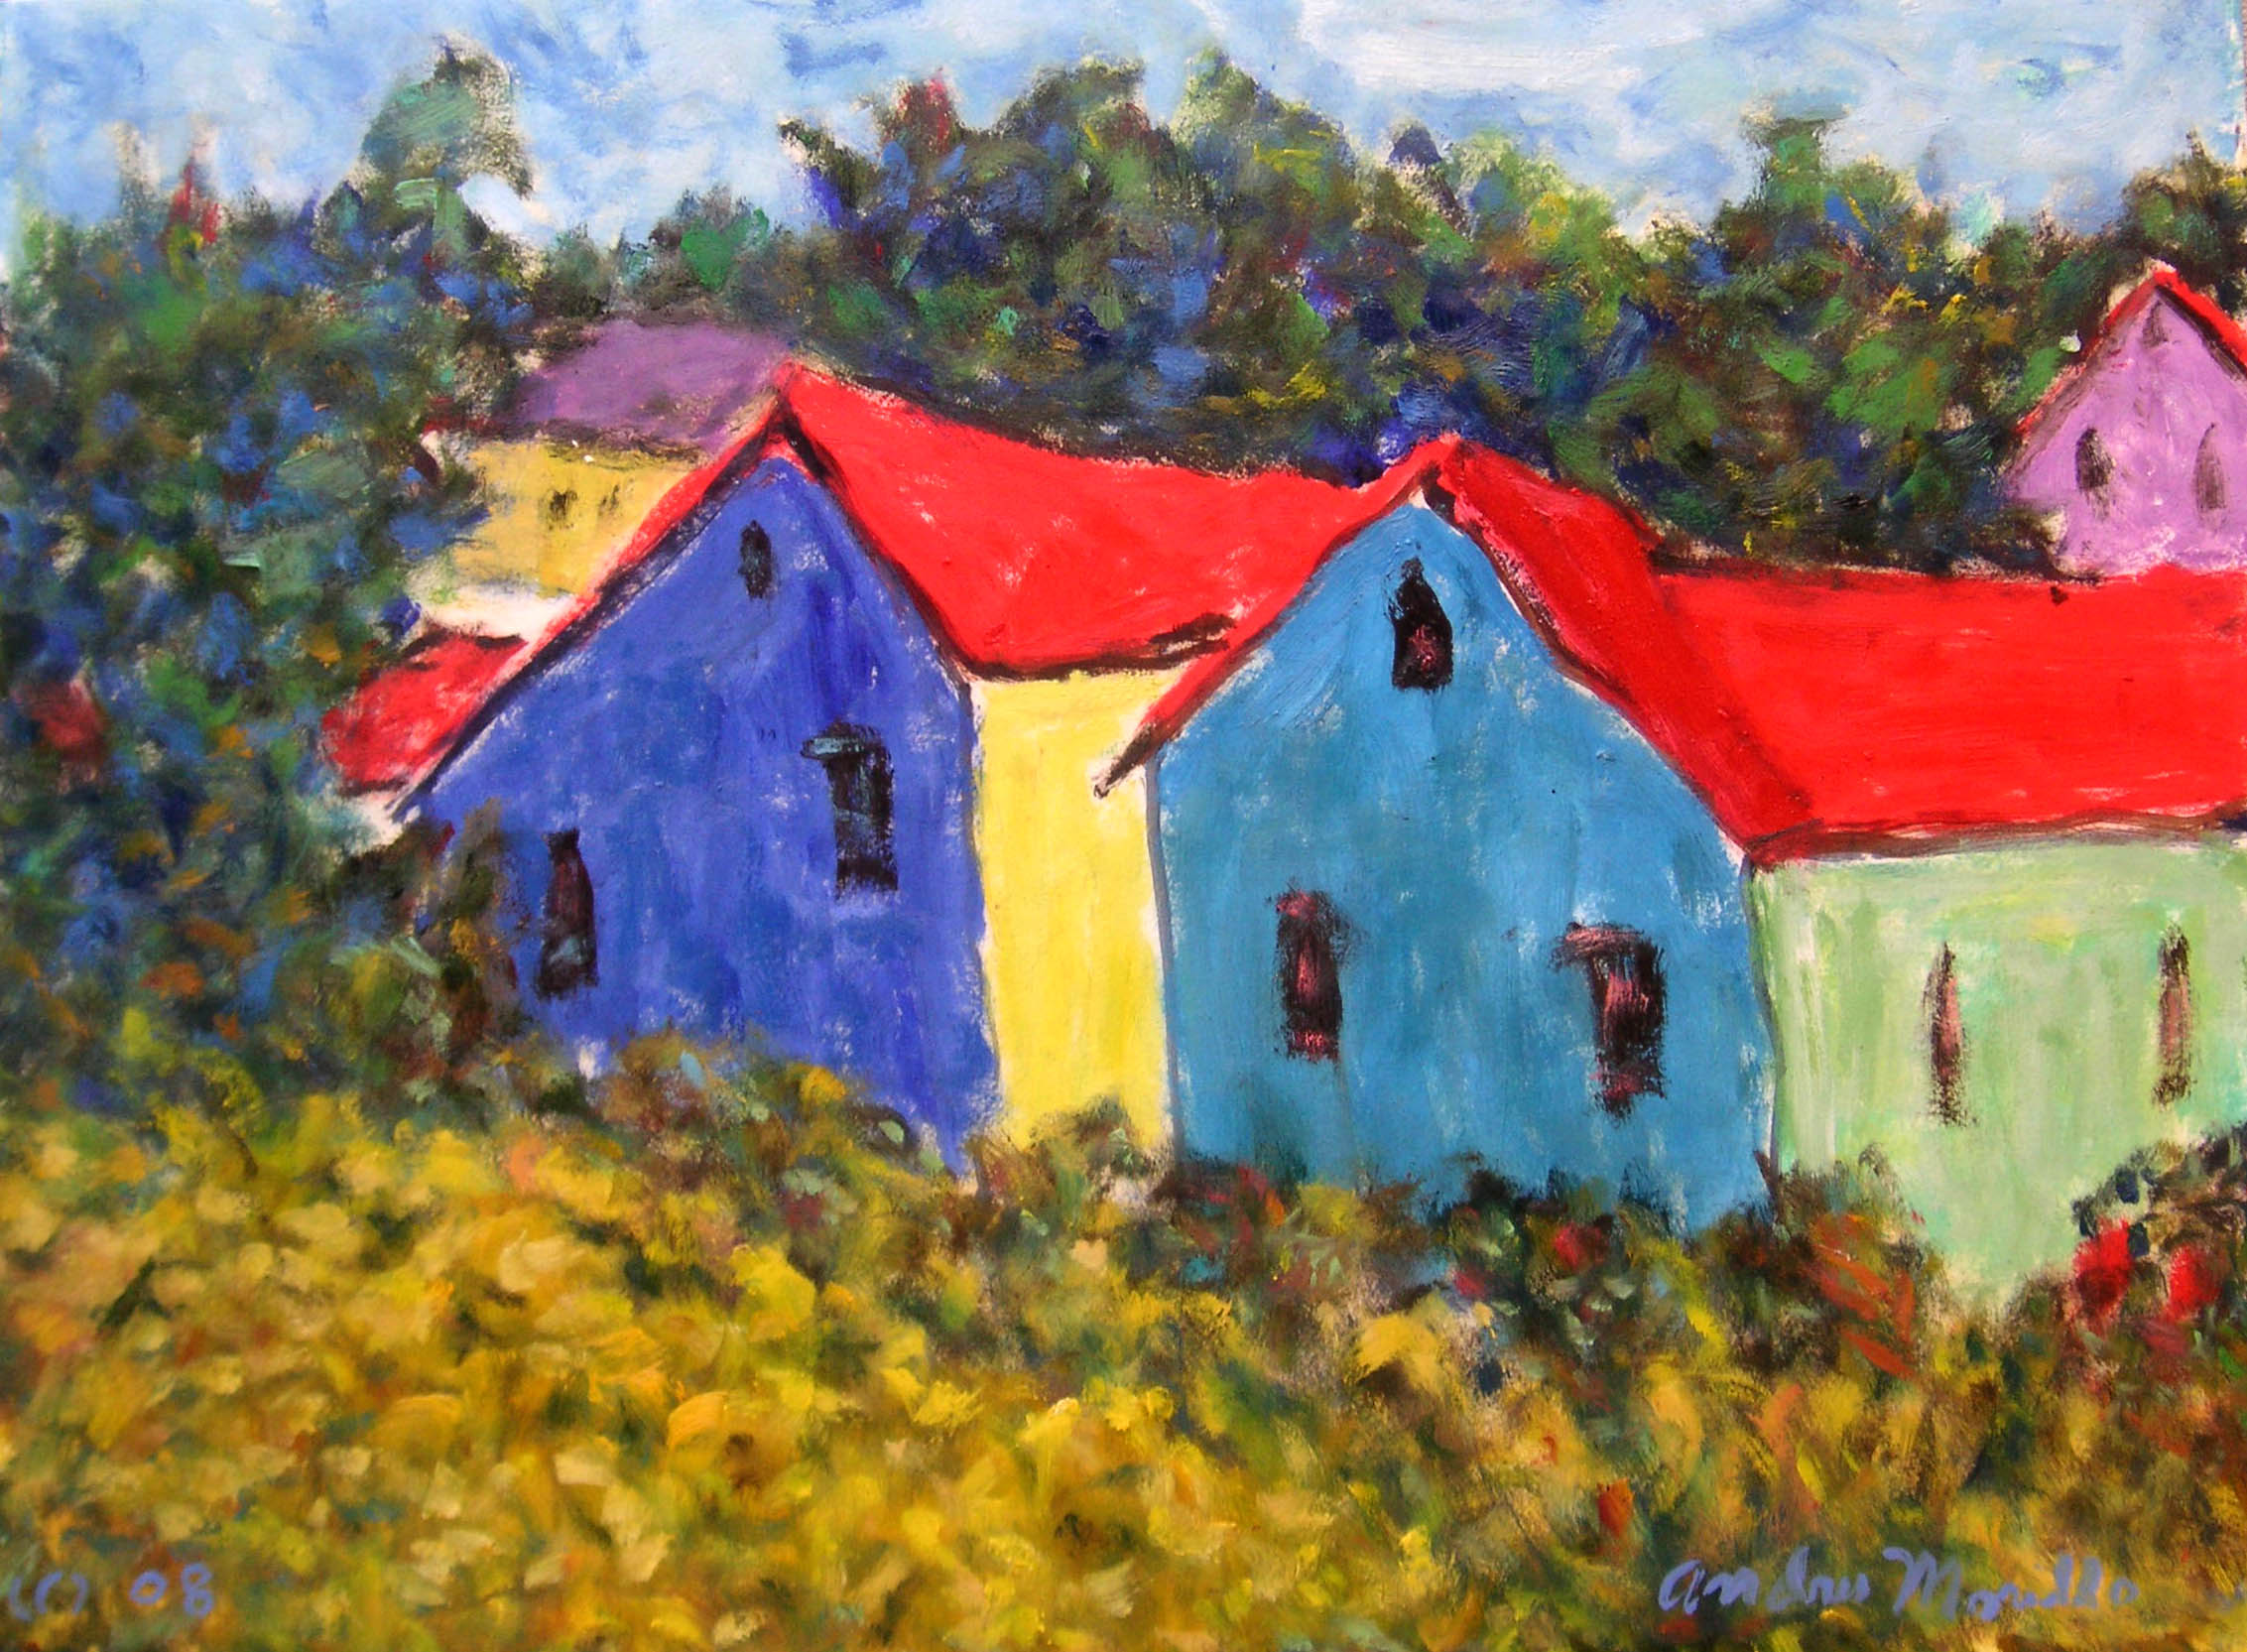 The Houses by  Andres  Morillo - Masterpiece Online